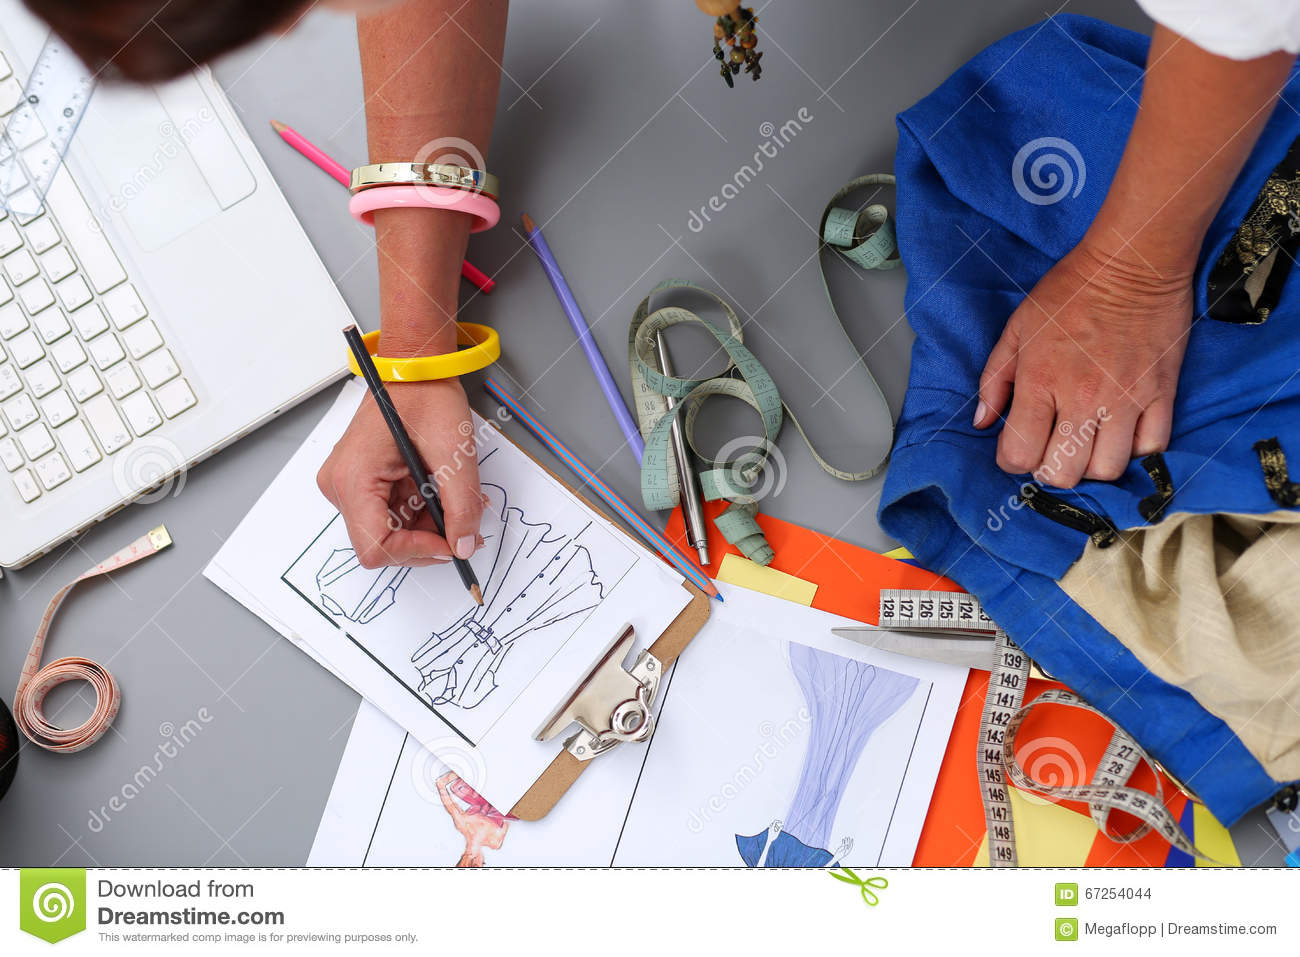 Female Fashion Designer Hands Holding Drawing Pad And Pen Stock Photo Image Of Design Idea 67254044